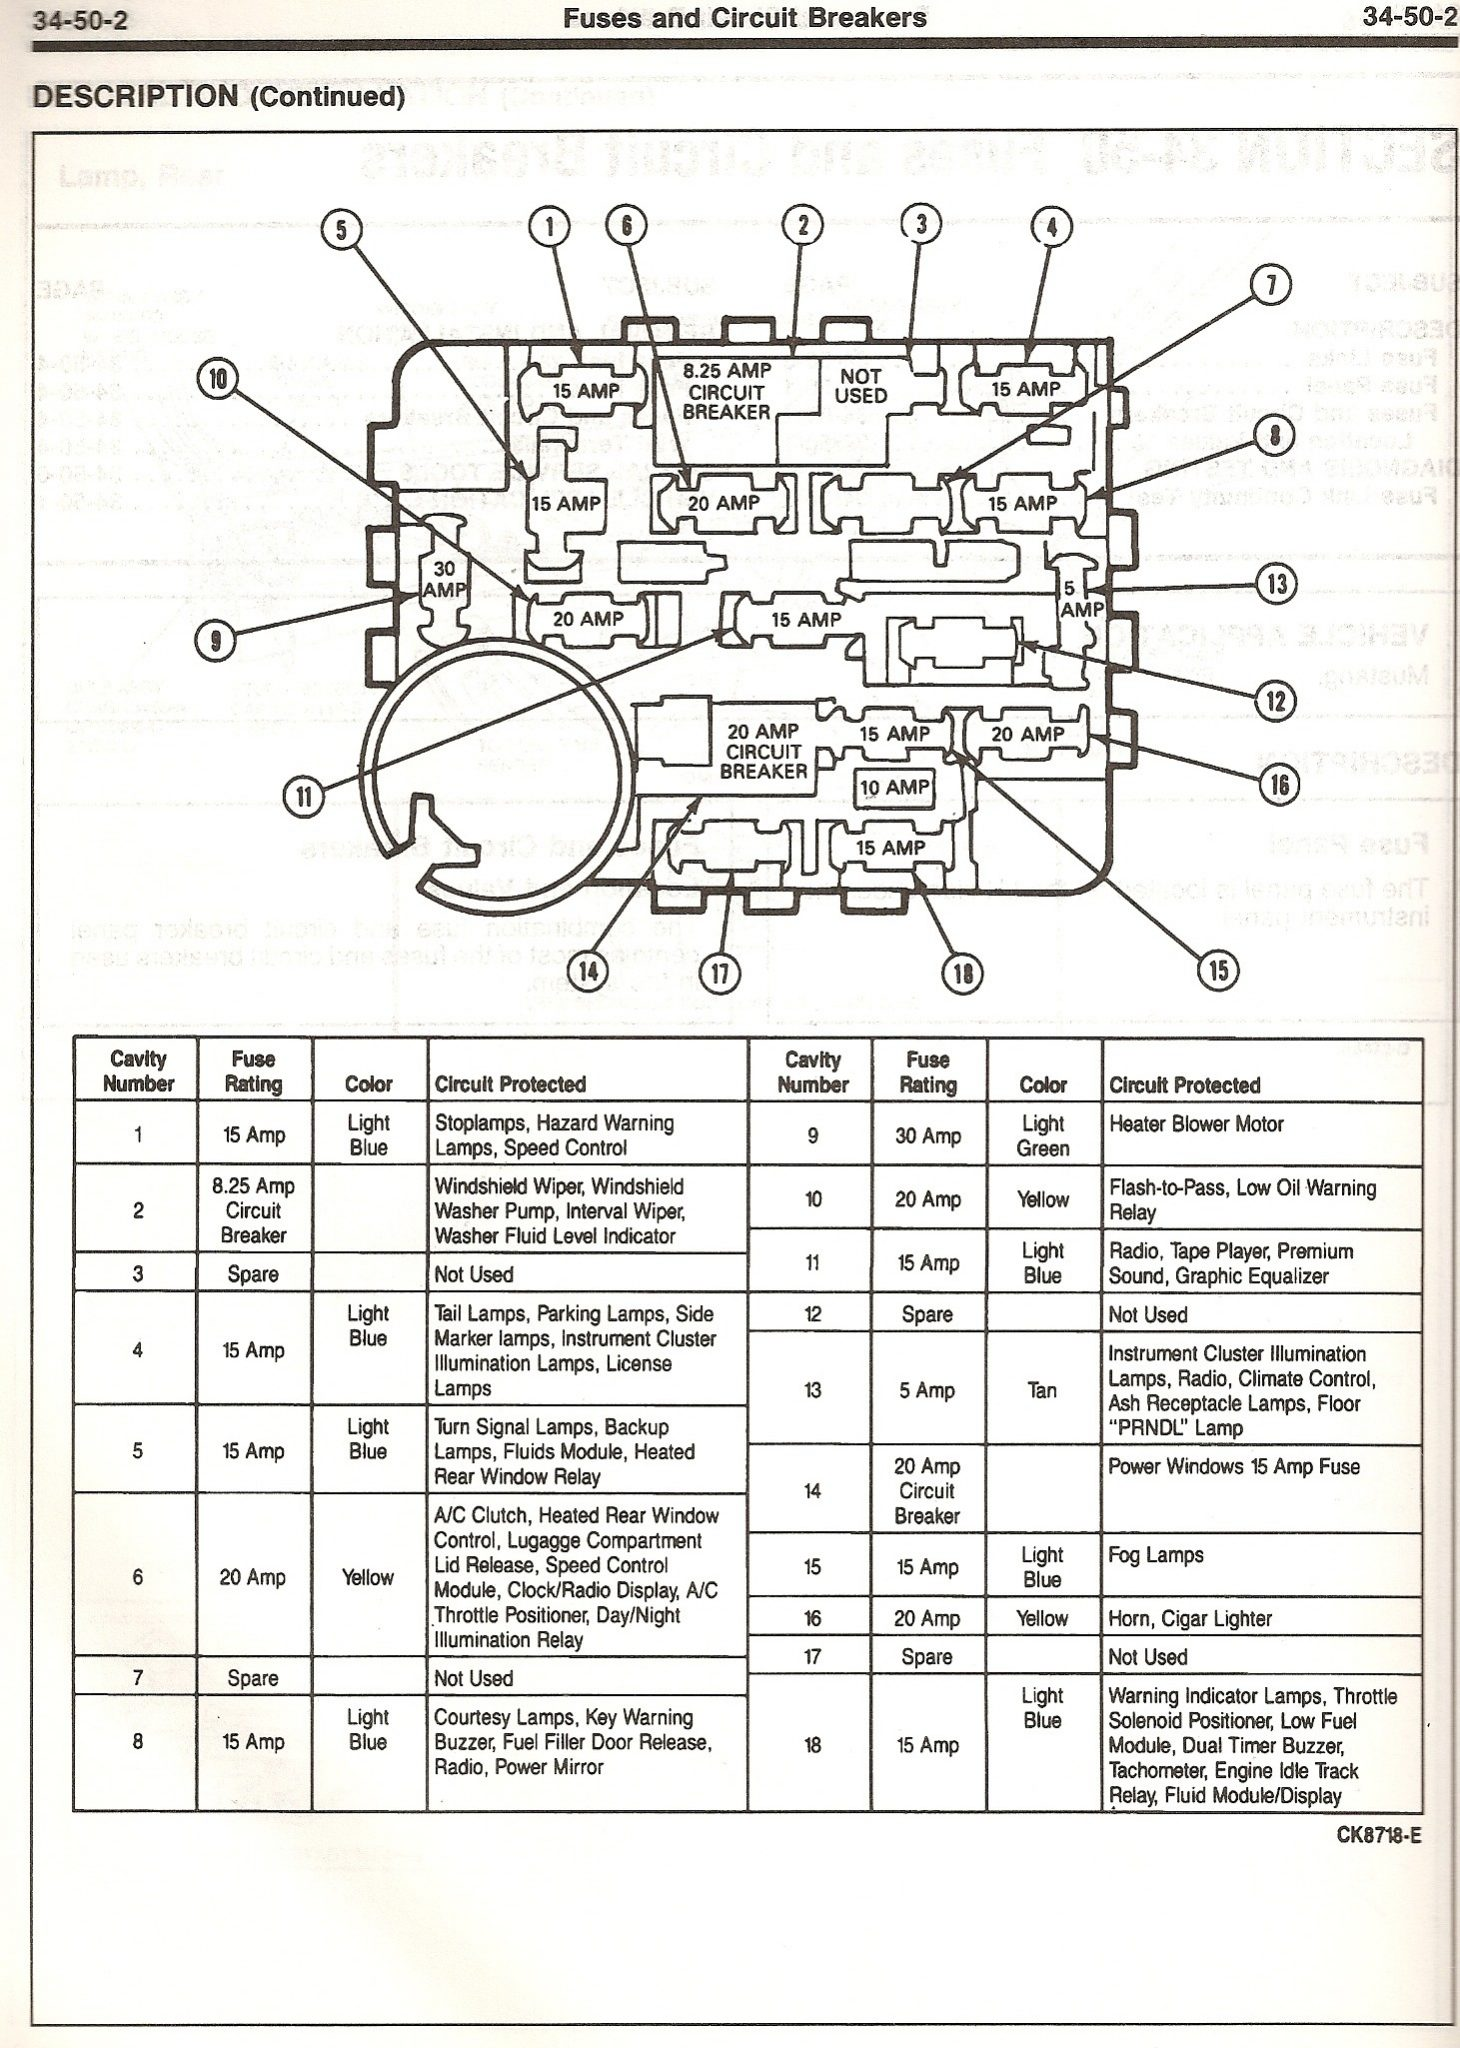 2002 Ford Mustang Fuse Panel Under Dash Diagram Mustang on jeep grand cherokee instrument cluster wiring diagram new